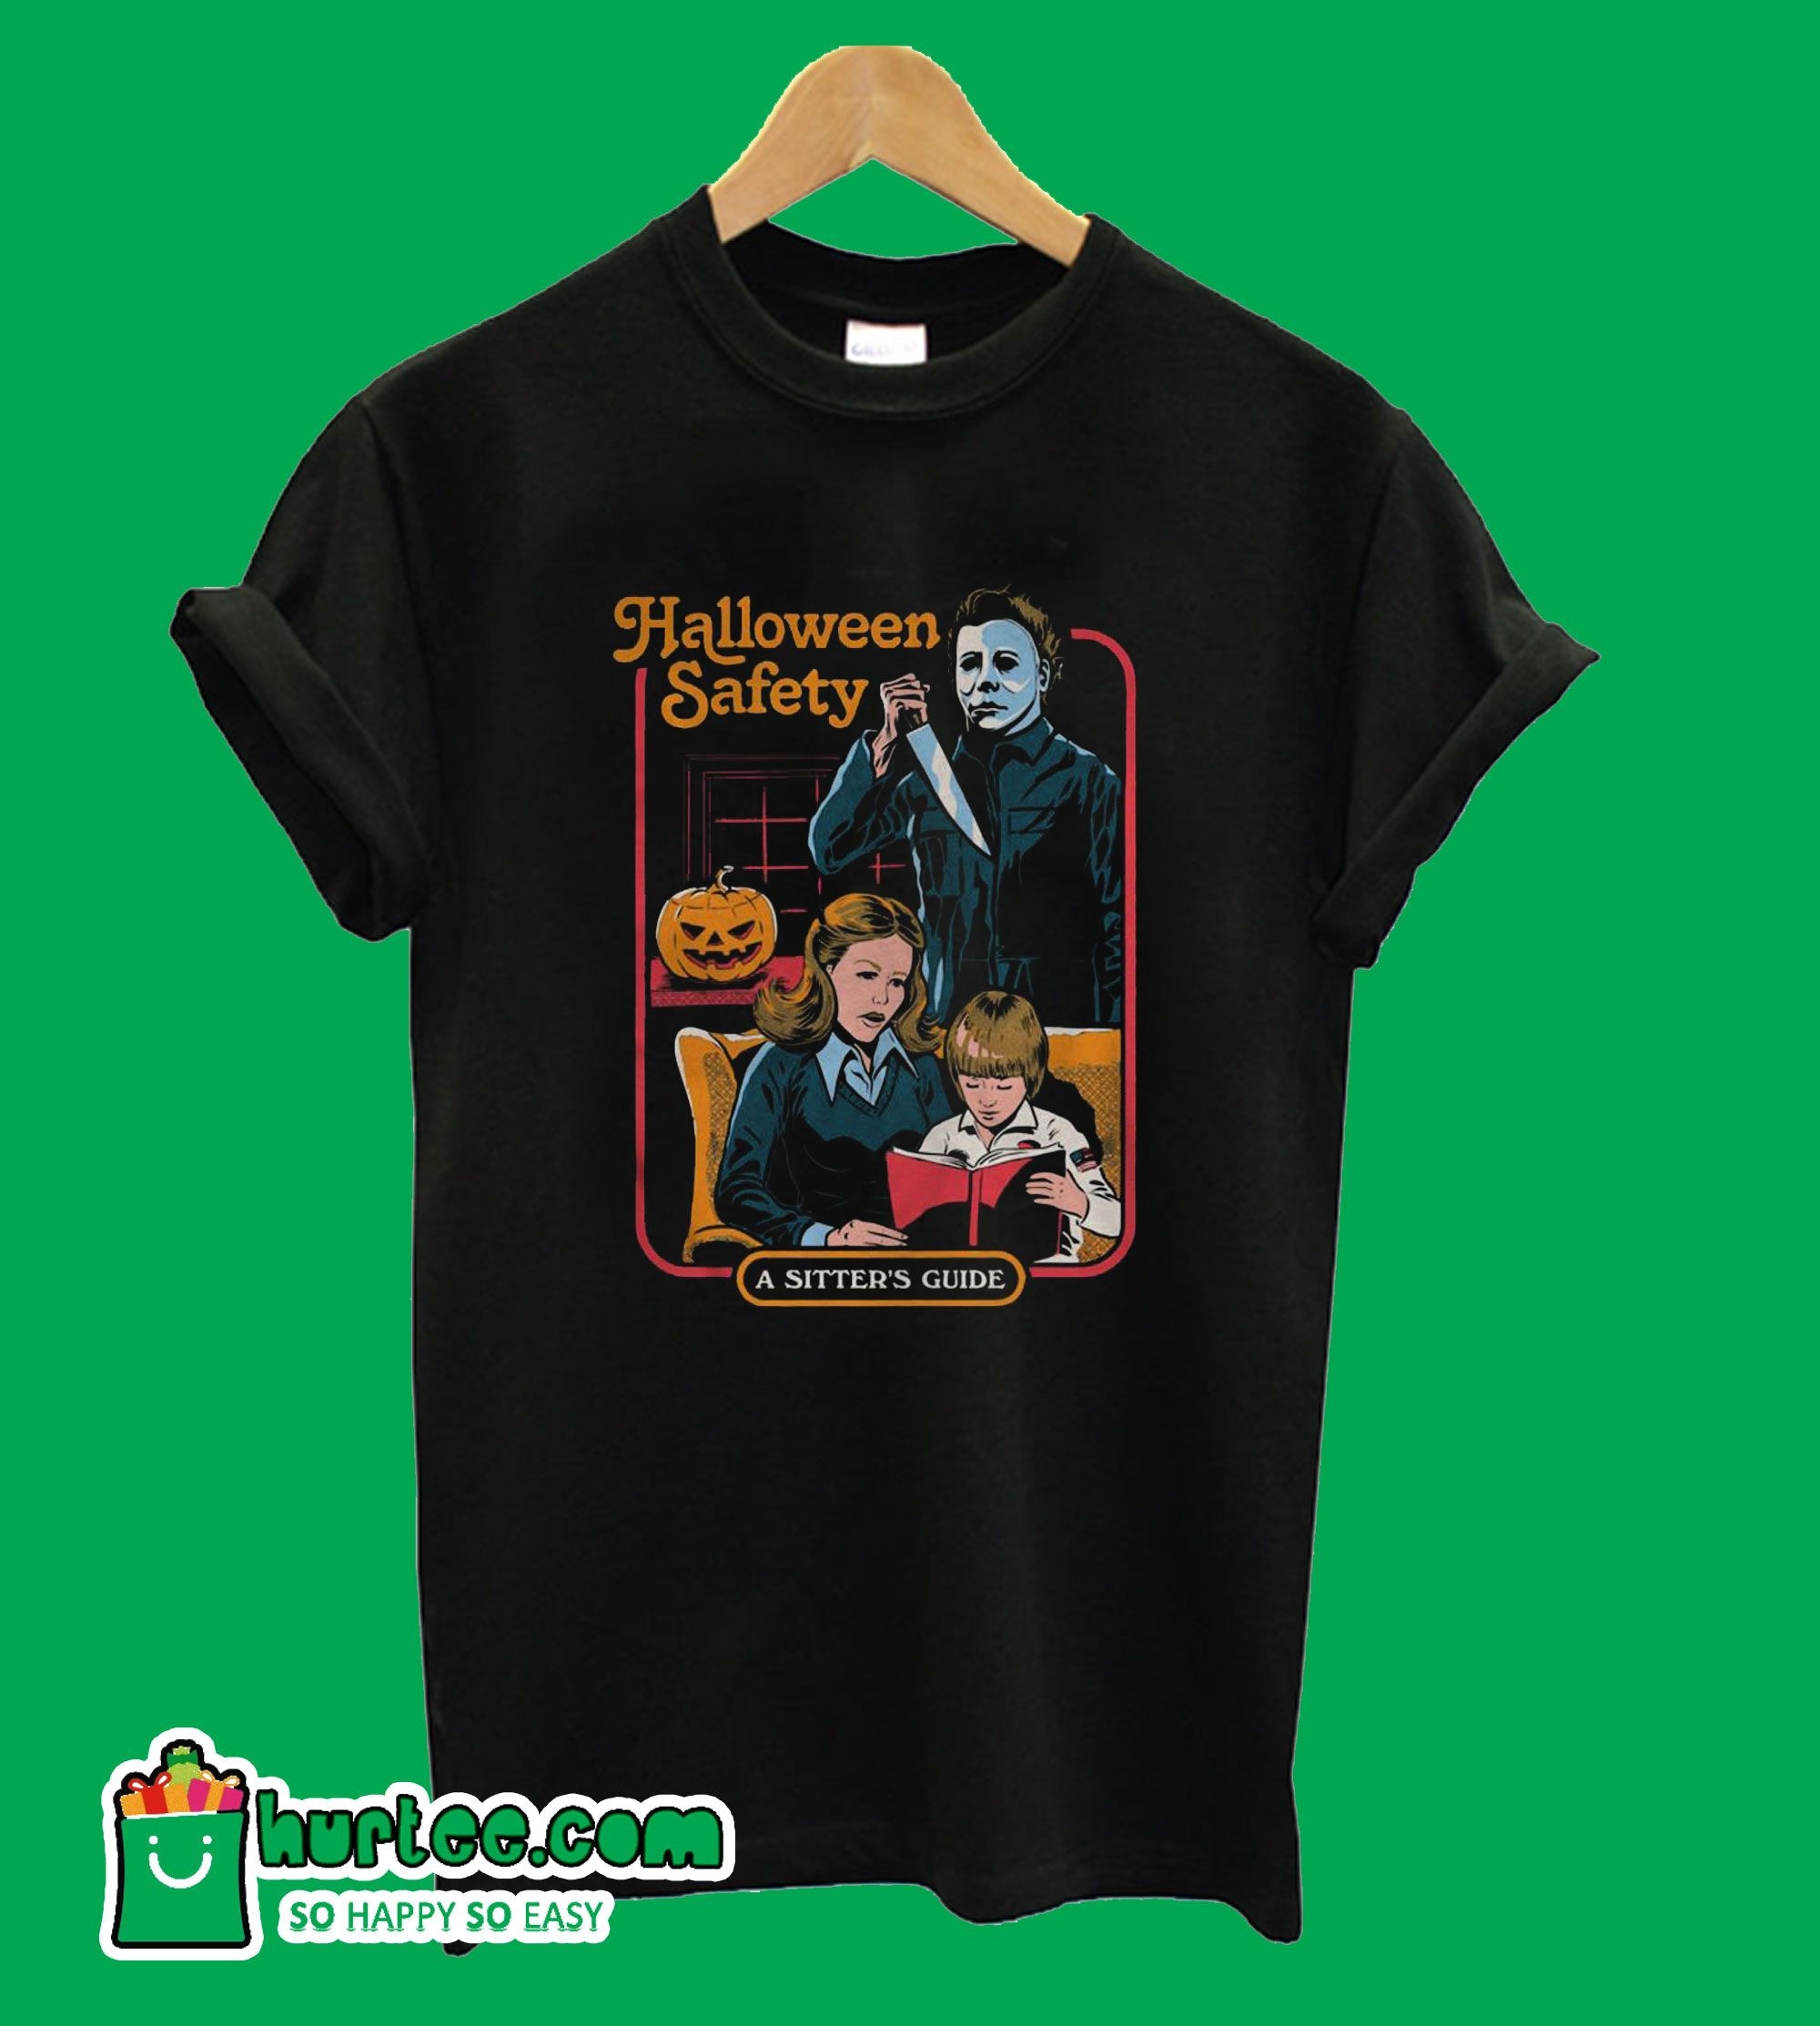 Halloween Safety A Sitter's Guide TShirt Halloween